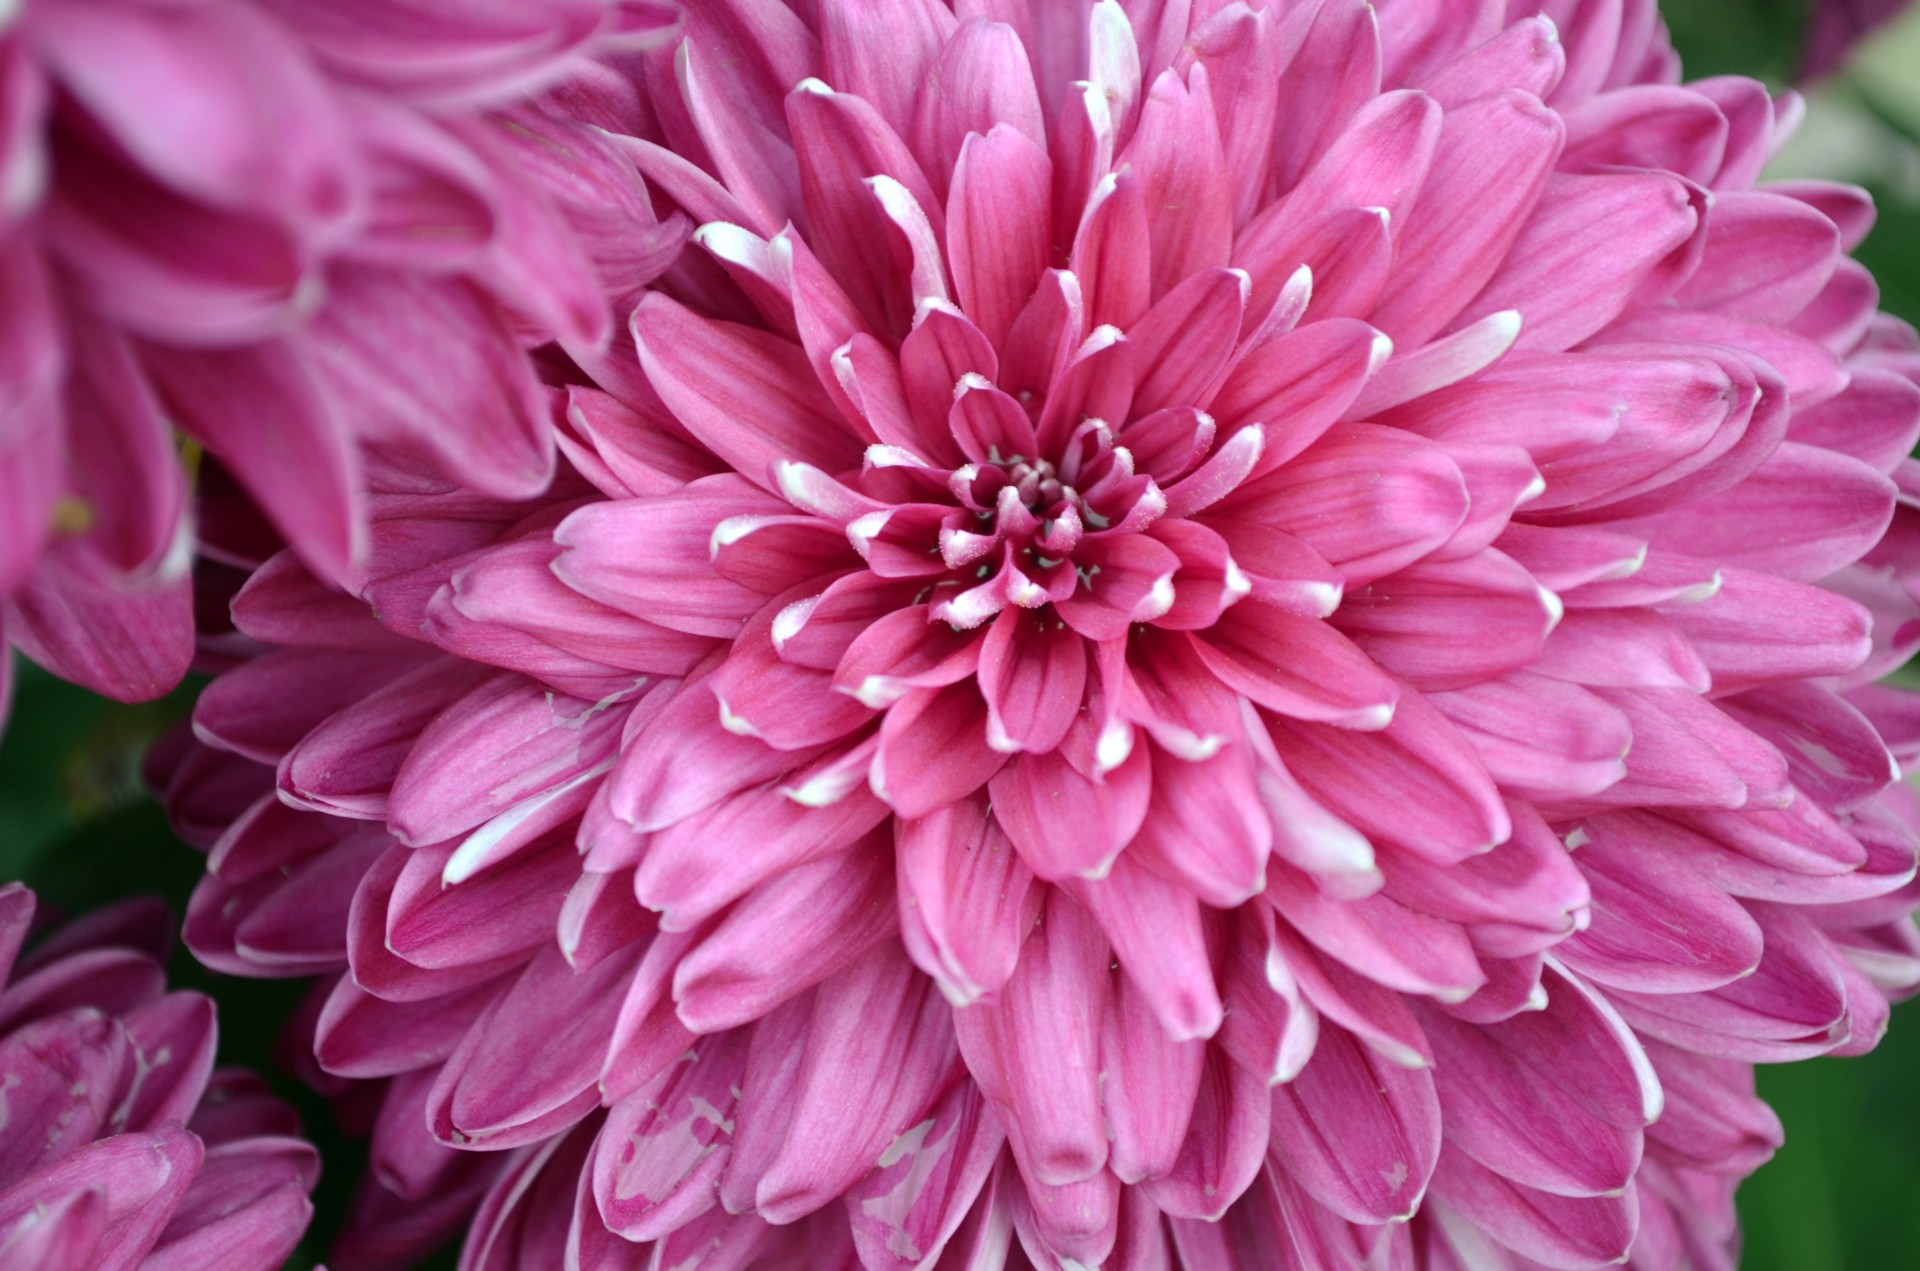 Fall Wallpaper Pink Mums Free Stock Photo Public Domain Pictures